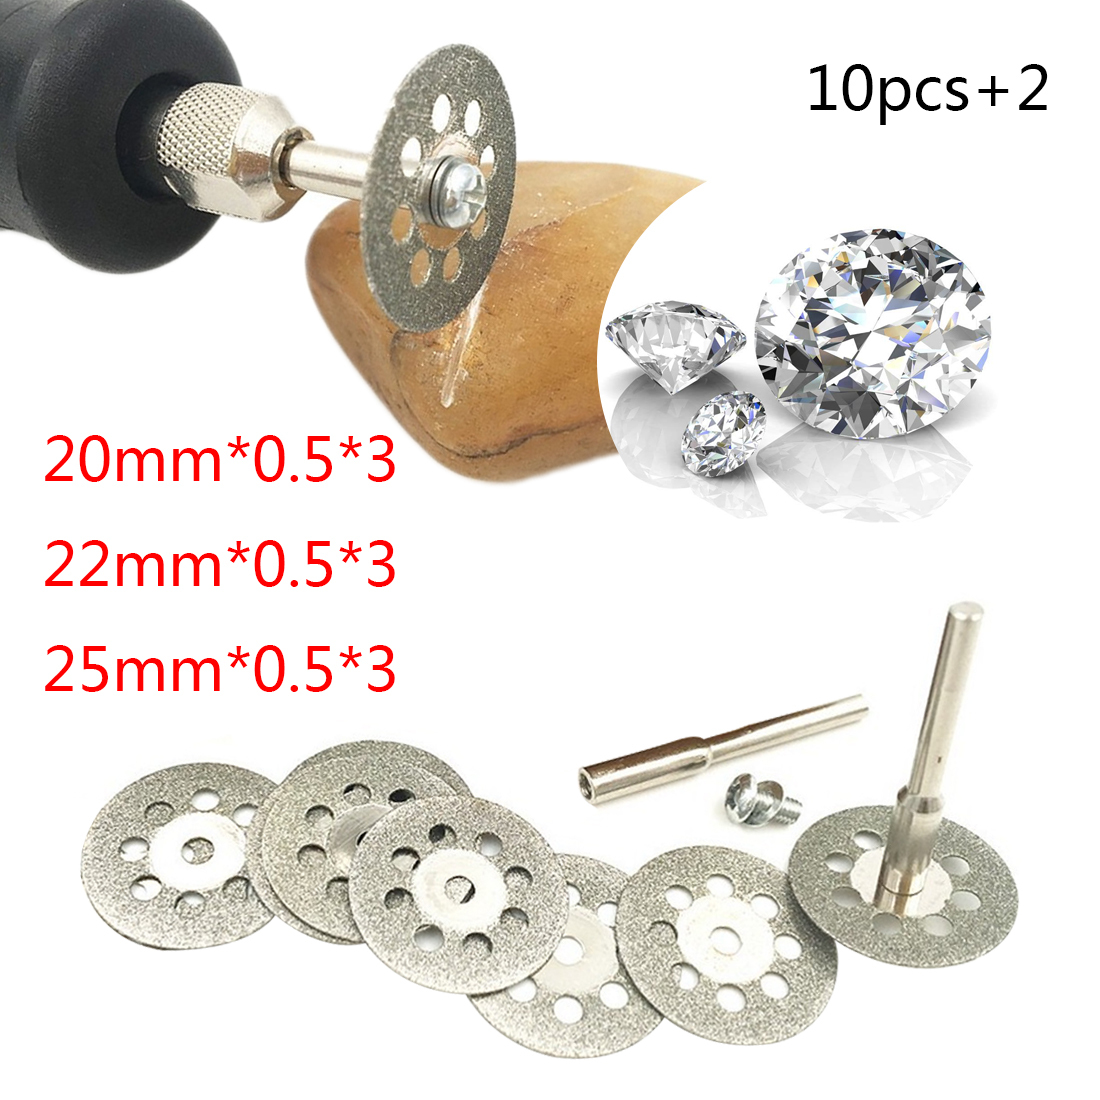 Tool Set 10pcs/5pcs Dremel Diamond Grinding Wheel Saw Cutting Abrasive Disc For Dremel Rotary Tools Accessories With Mandrel